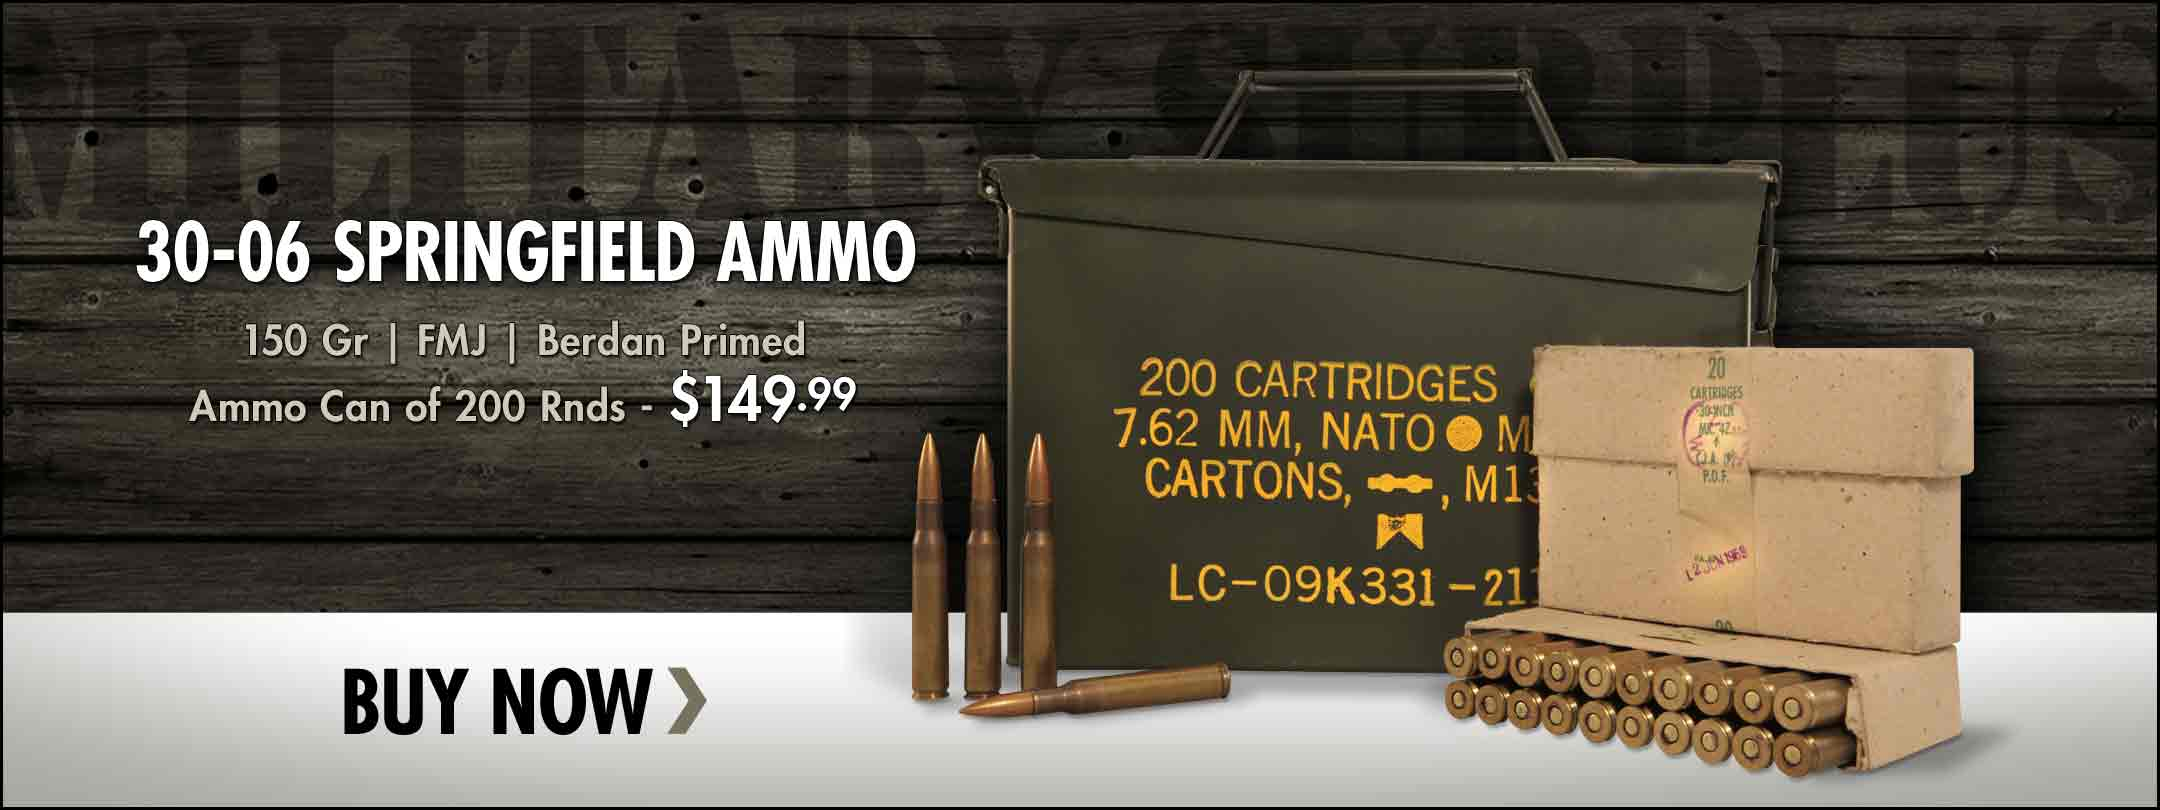 Military Surplus 30-06 Ammo